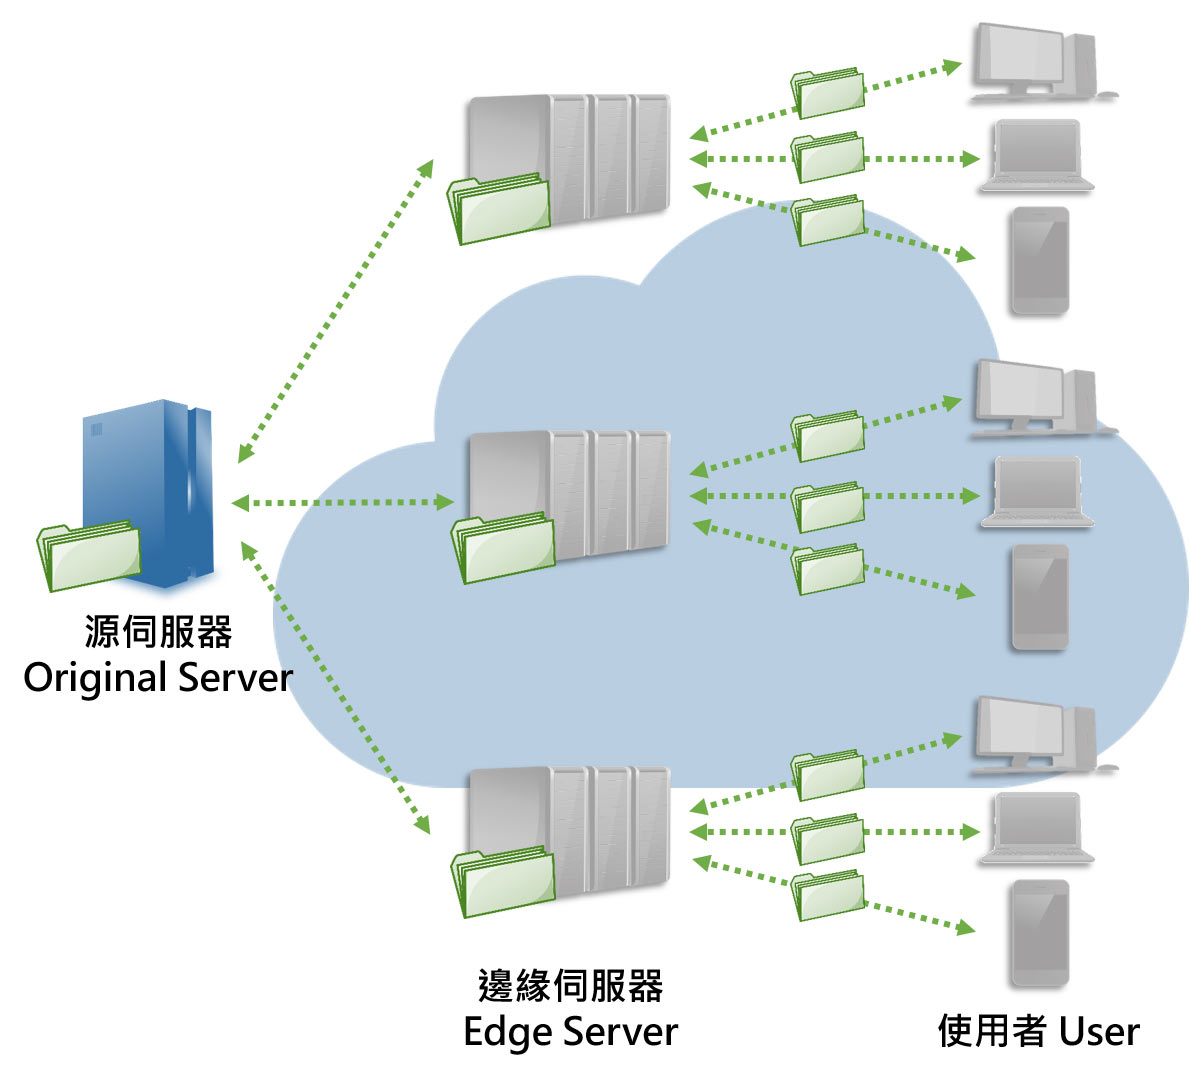 /content/dam/fetnet/user_resource/ebu/images/product/akamai-cdn/server-img-security-imperva-application-security_product.jpg